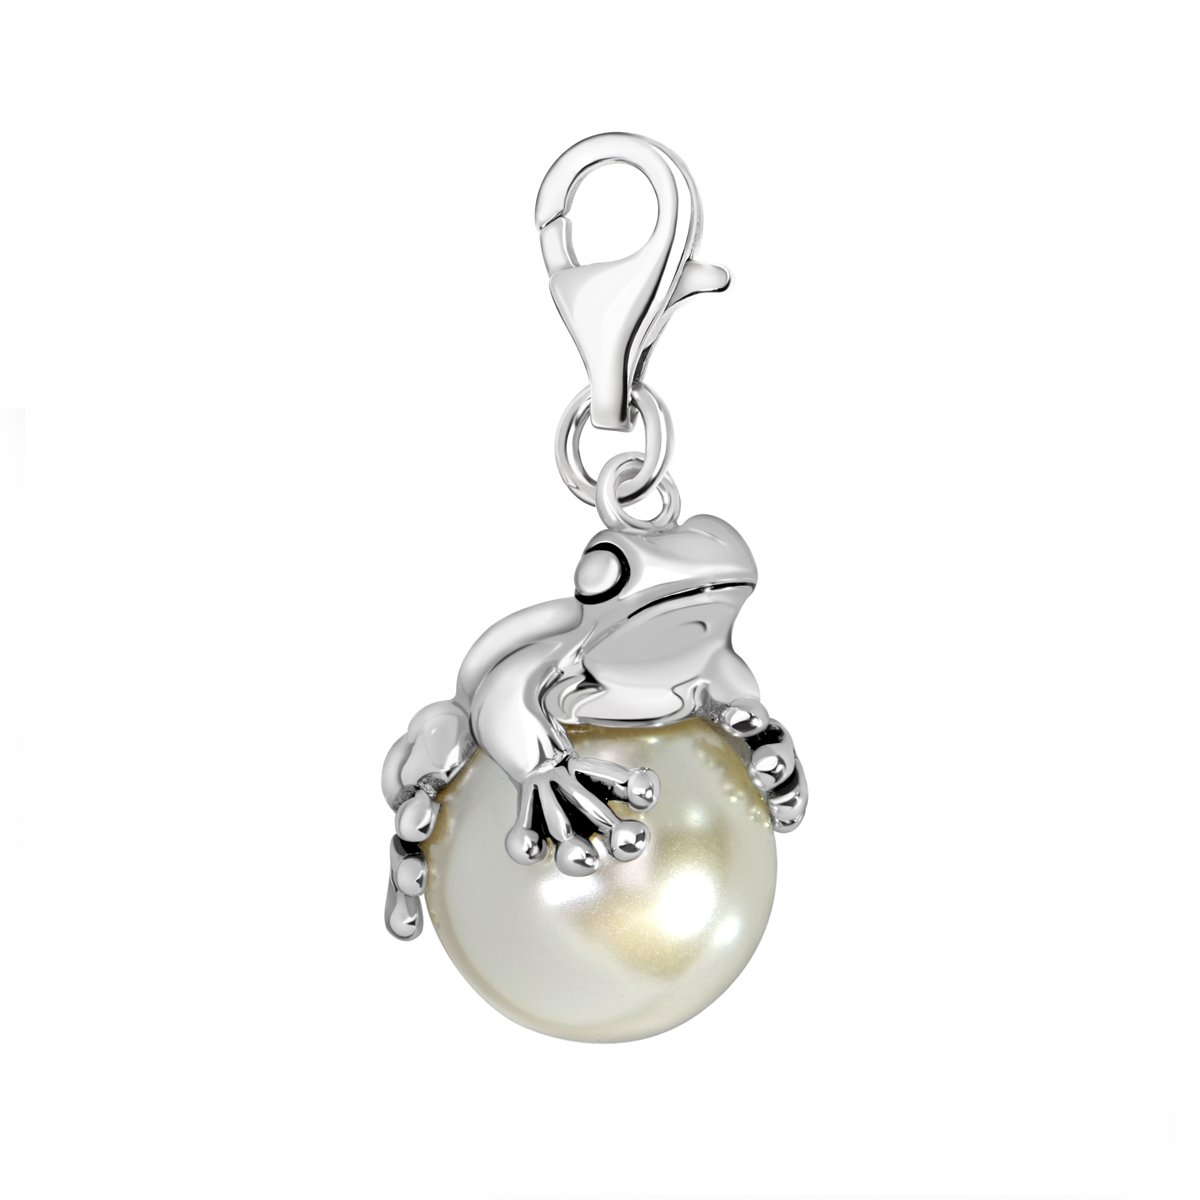 Quiges 925 Sterling Silver Imitation Pearl 3D Frog Lobster Clasp Charm Clip on Pendant